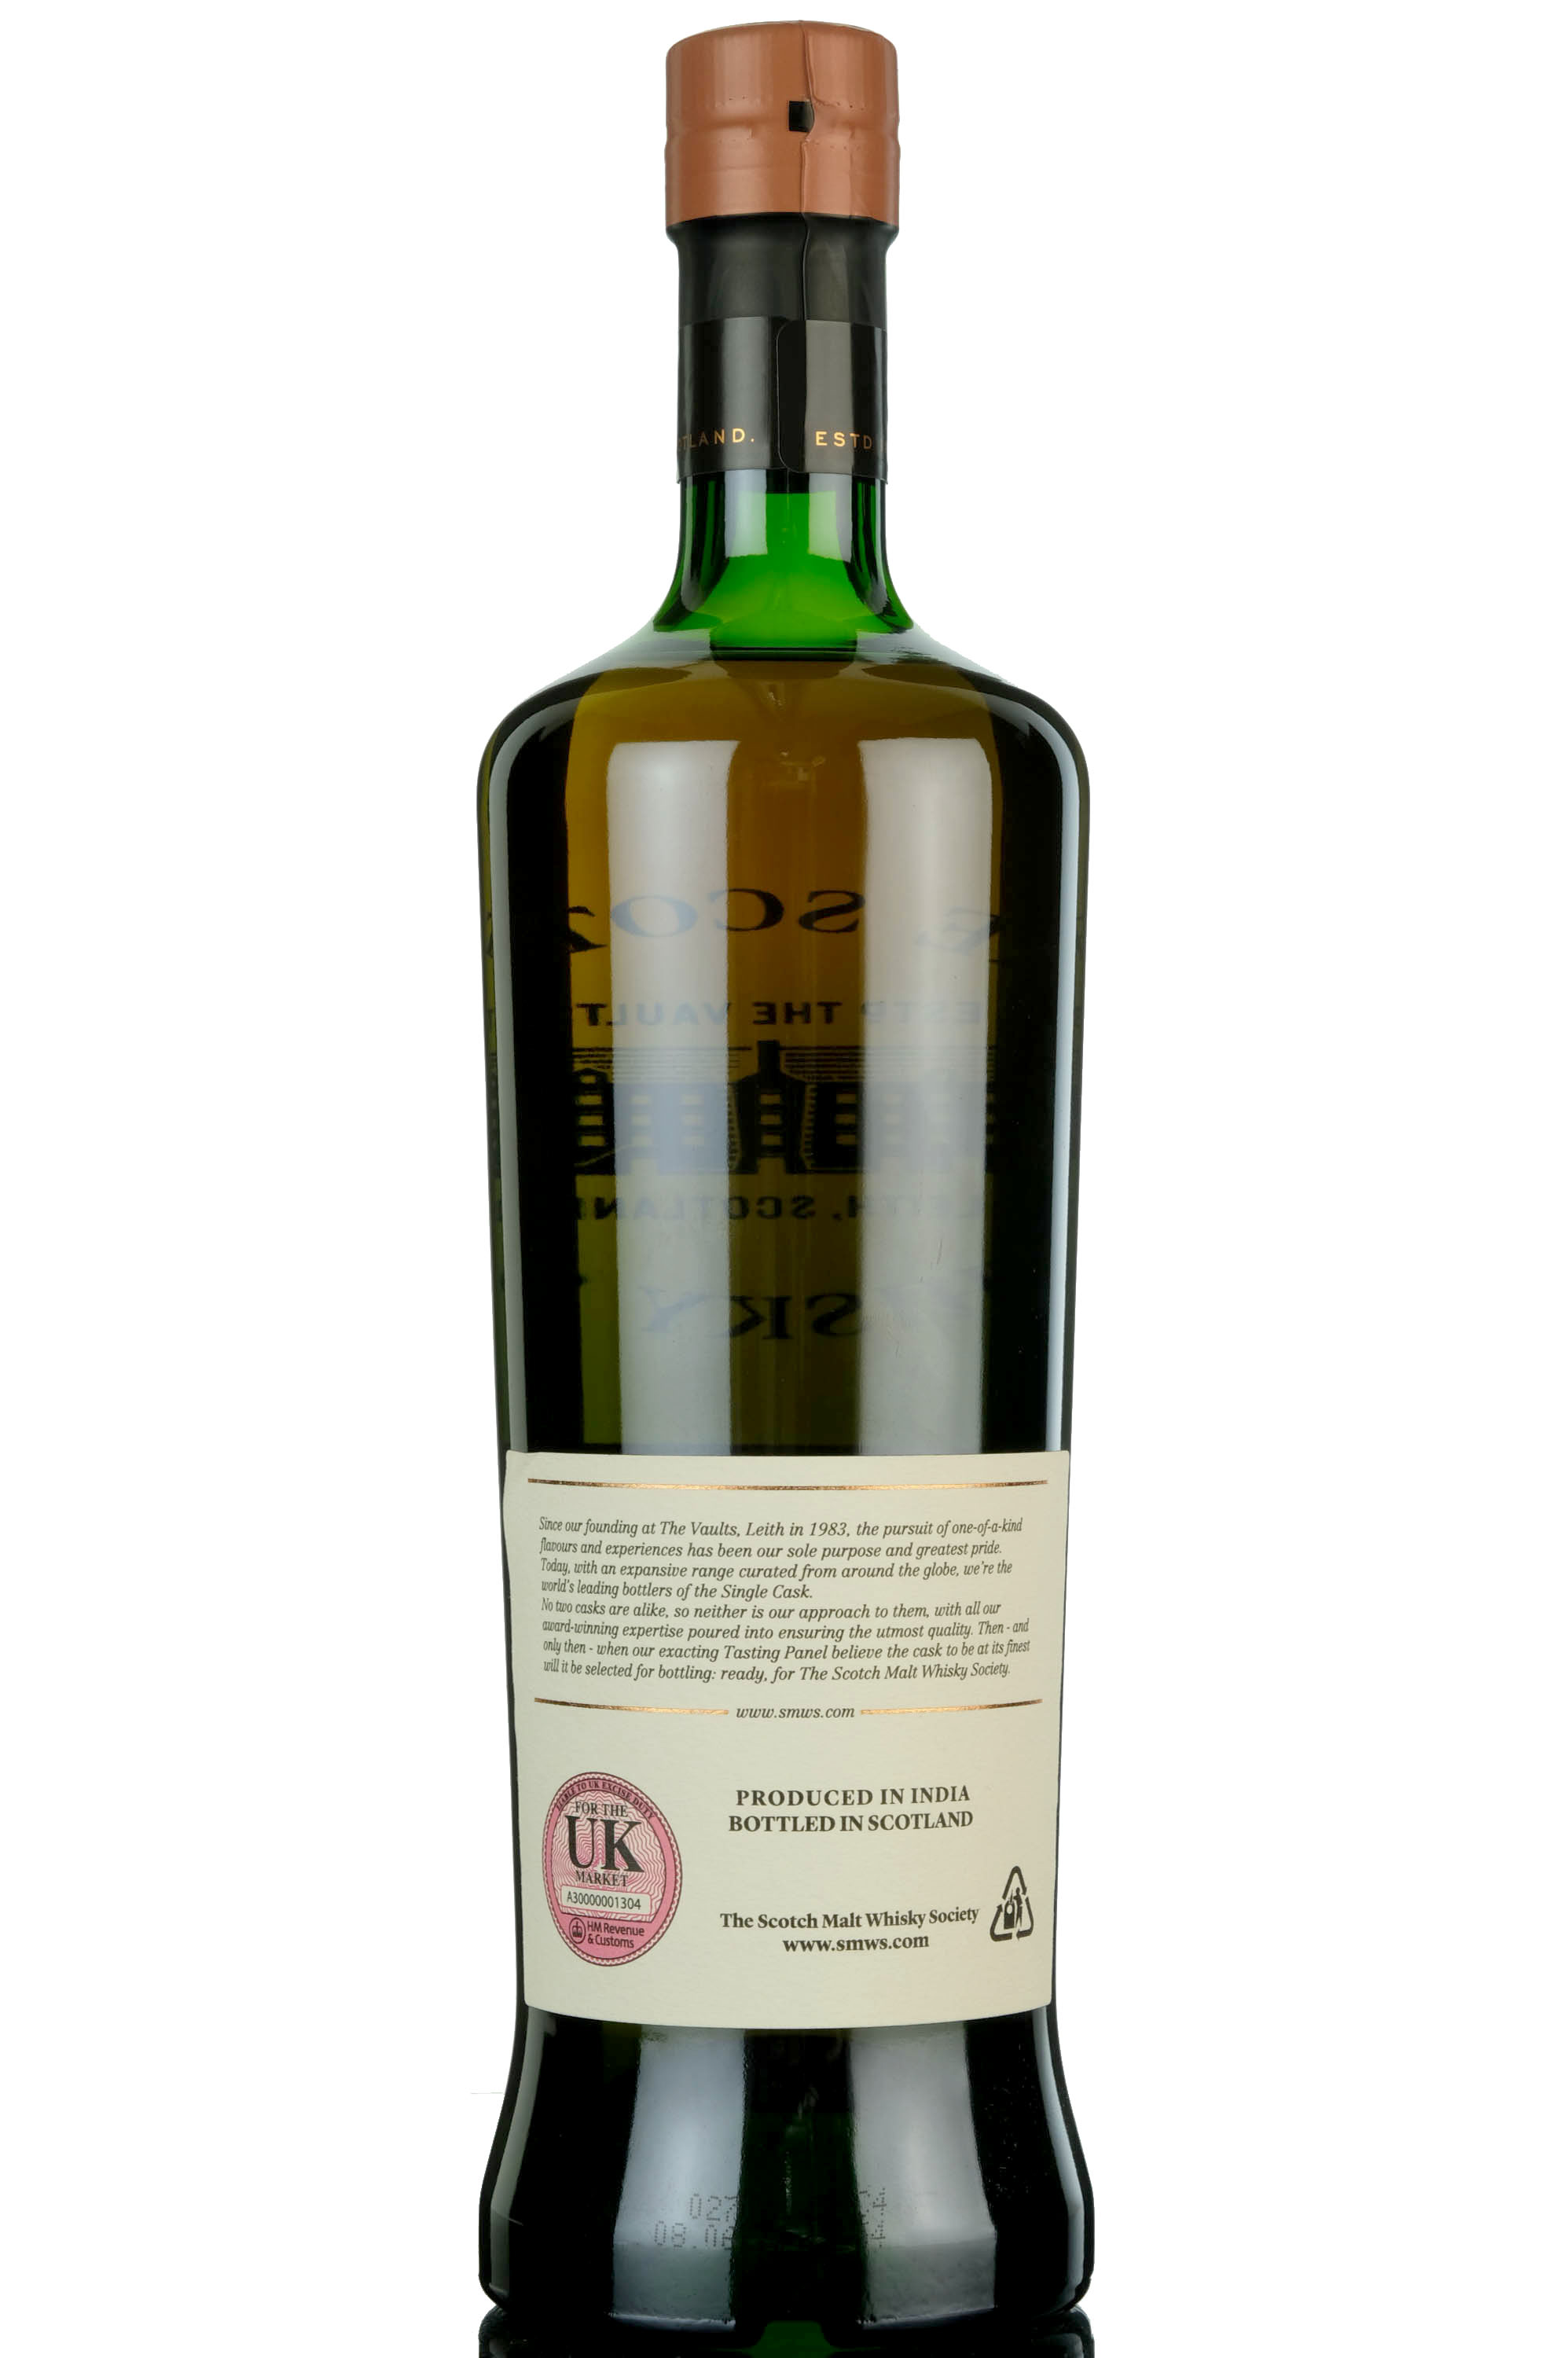 paul john 2010 - 6 year old - smws 134.3 - hello flavour